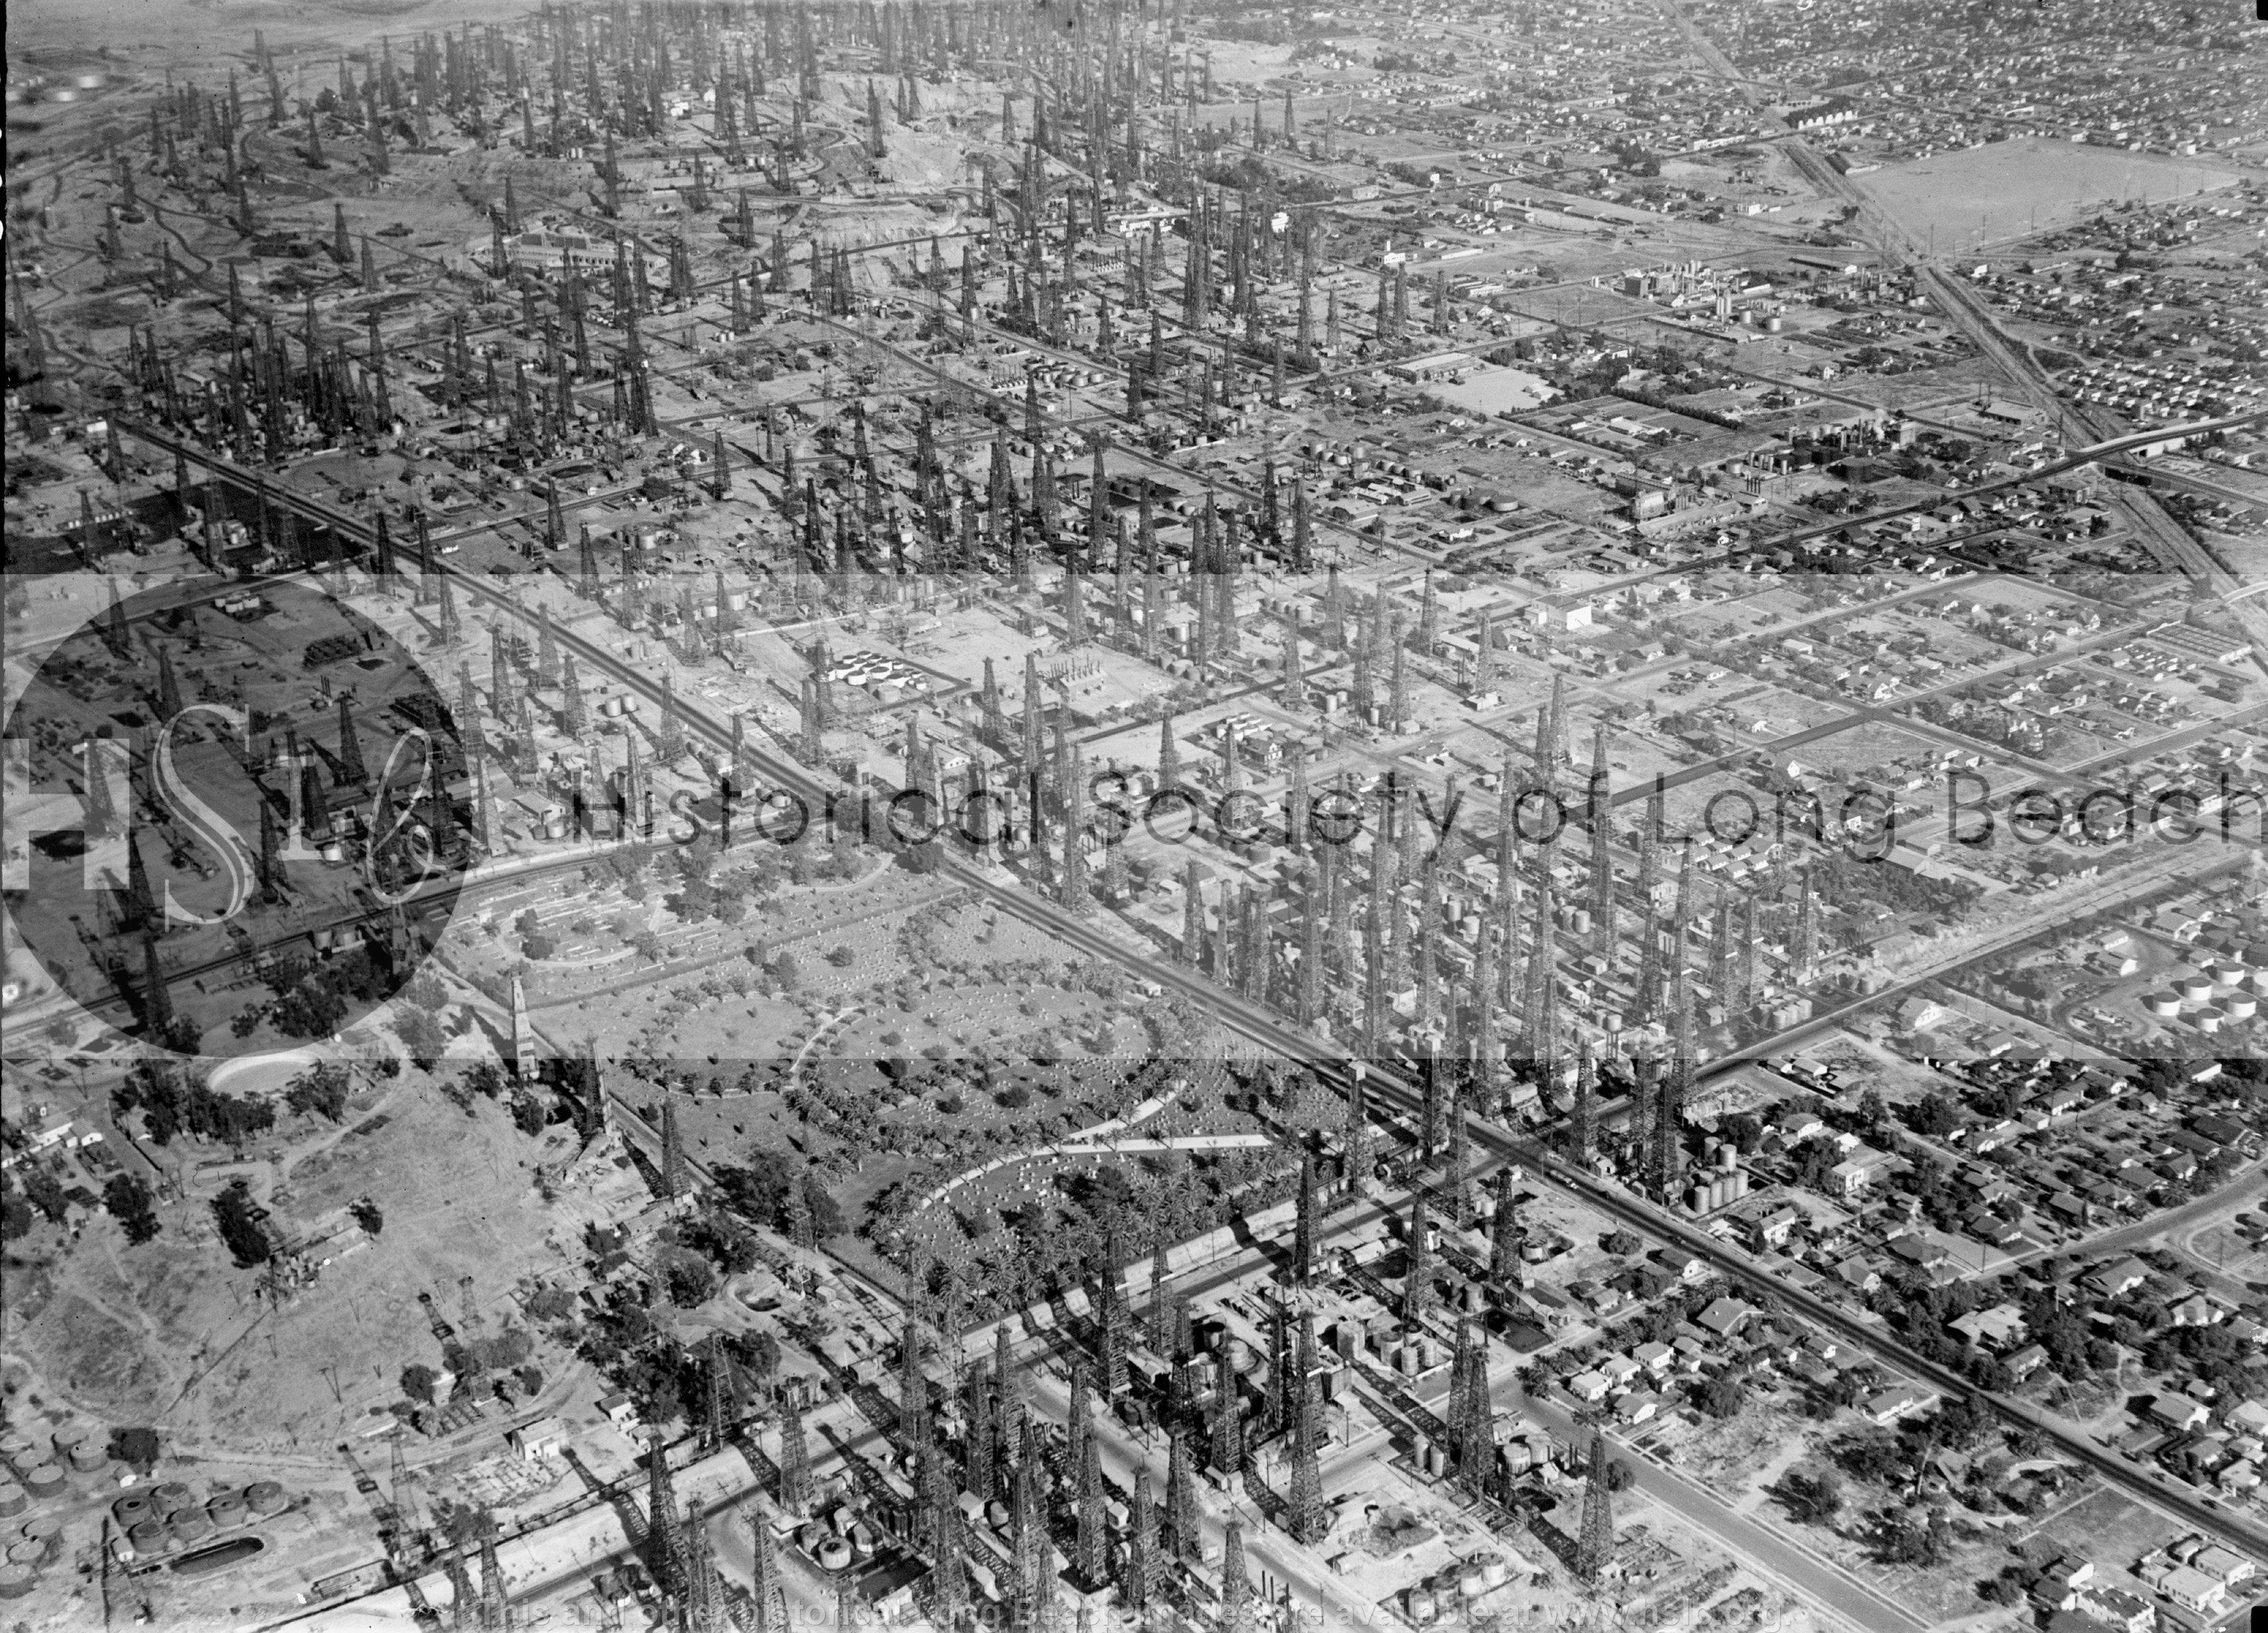 Long Beach cemeteries, 1936